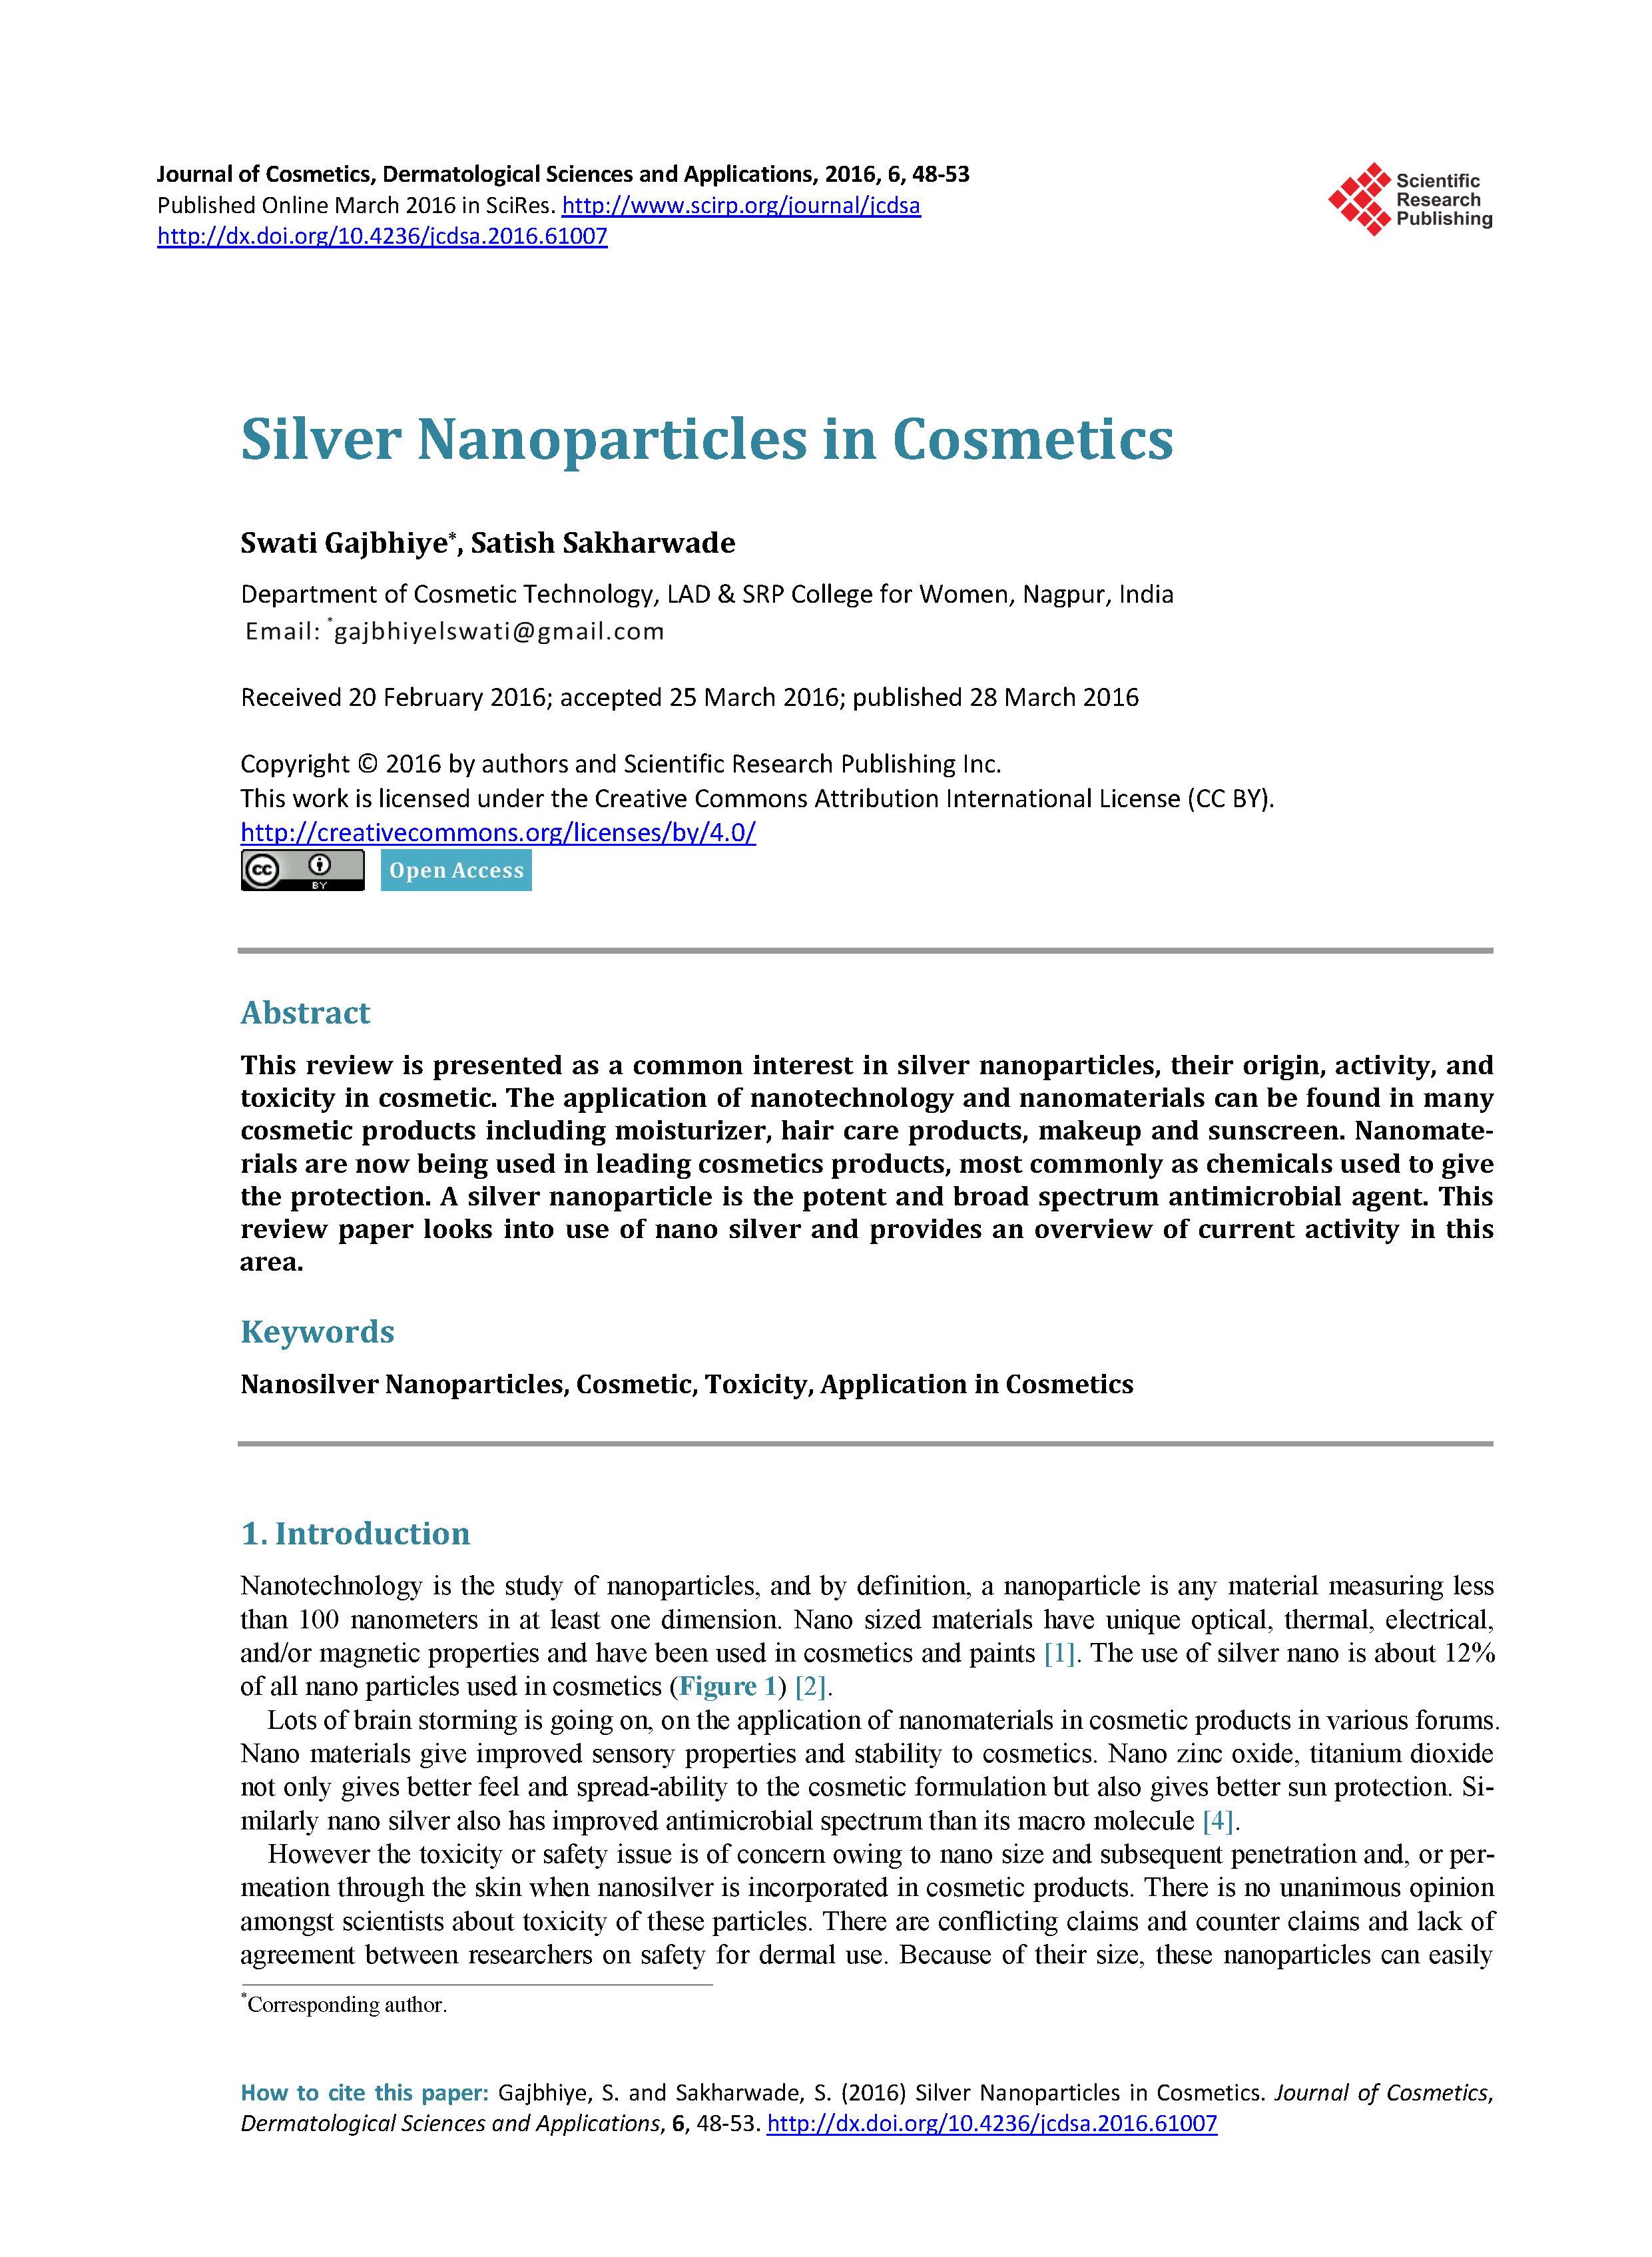 Silver Nanoparticles in Cosmetics page 1